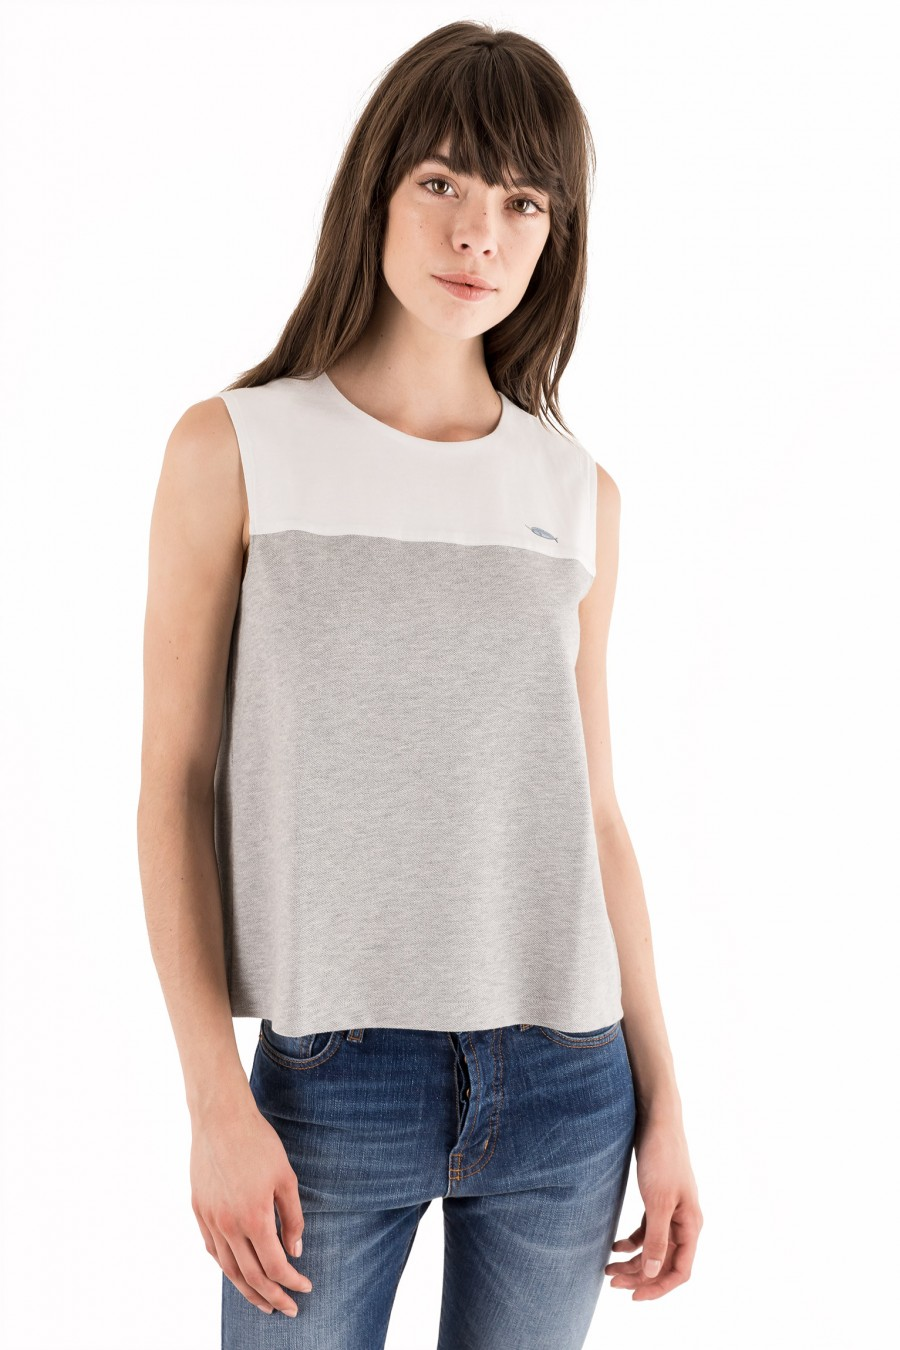 White and grey cotton top